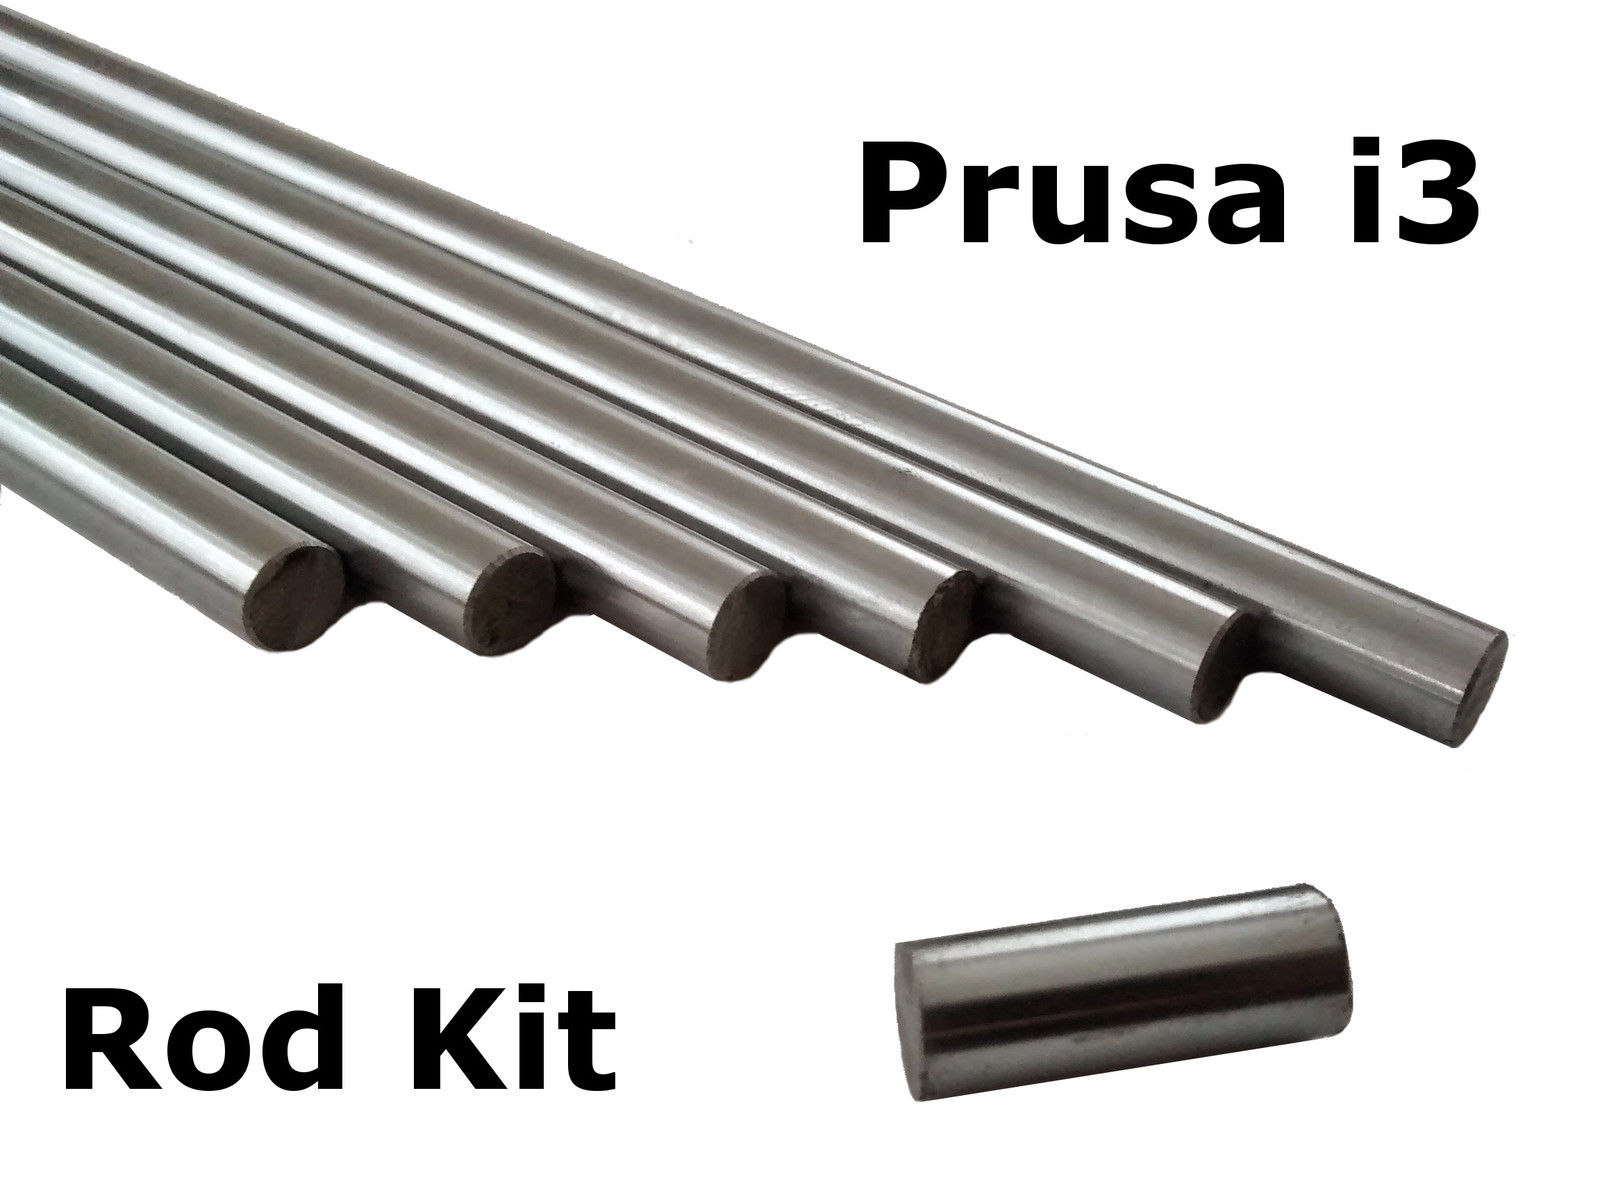 Prusa i3 3D Printer Smooth Rod Kits - 8mm Chrome Steel Smooth Rod L 20mm 320mm 350mm 370mm Linear Shaft Optical Axis - RepRap